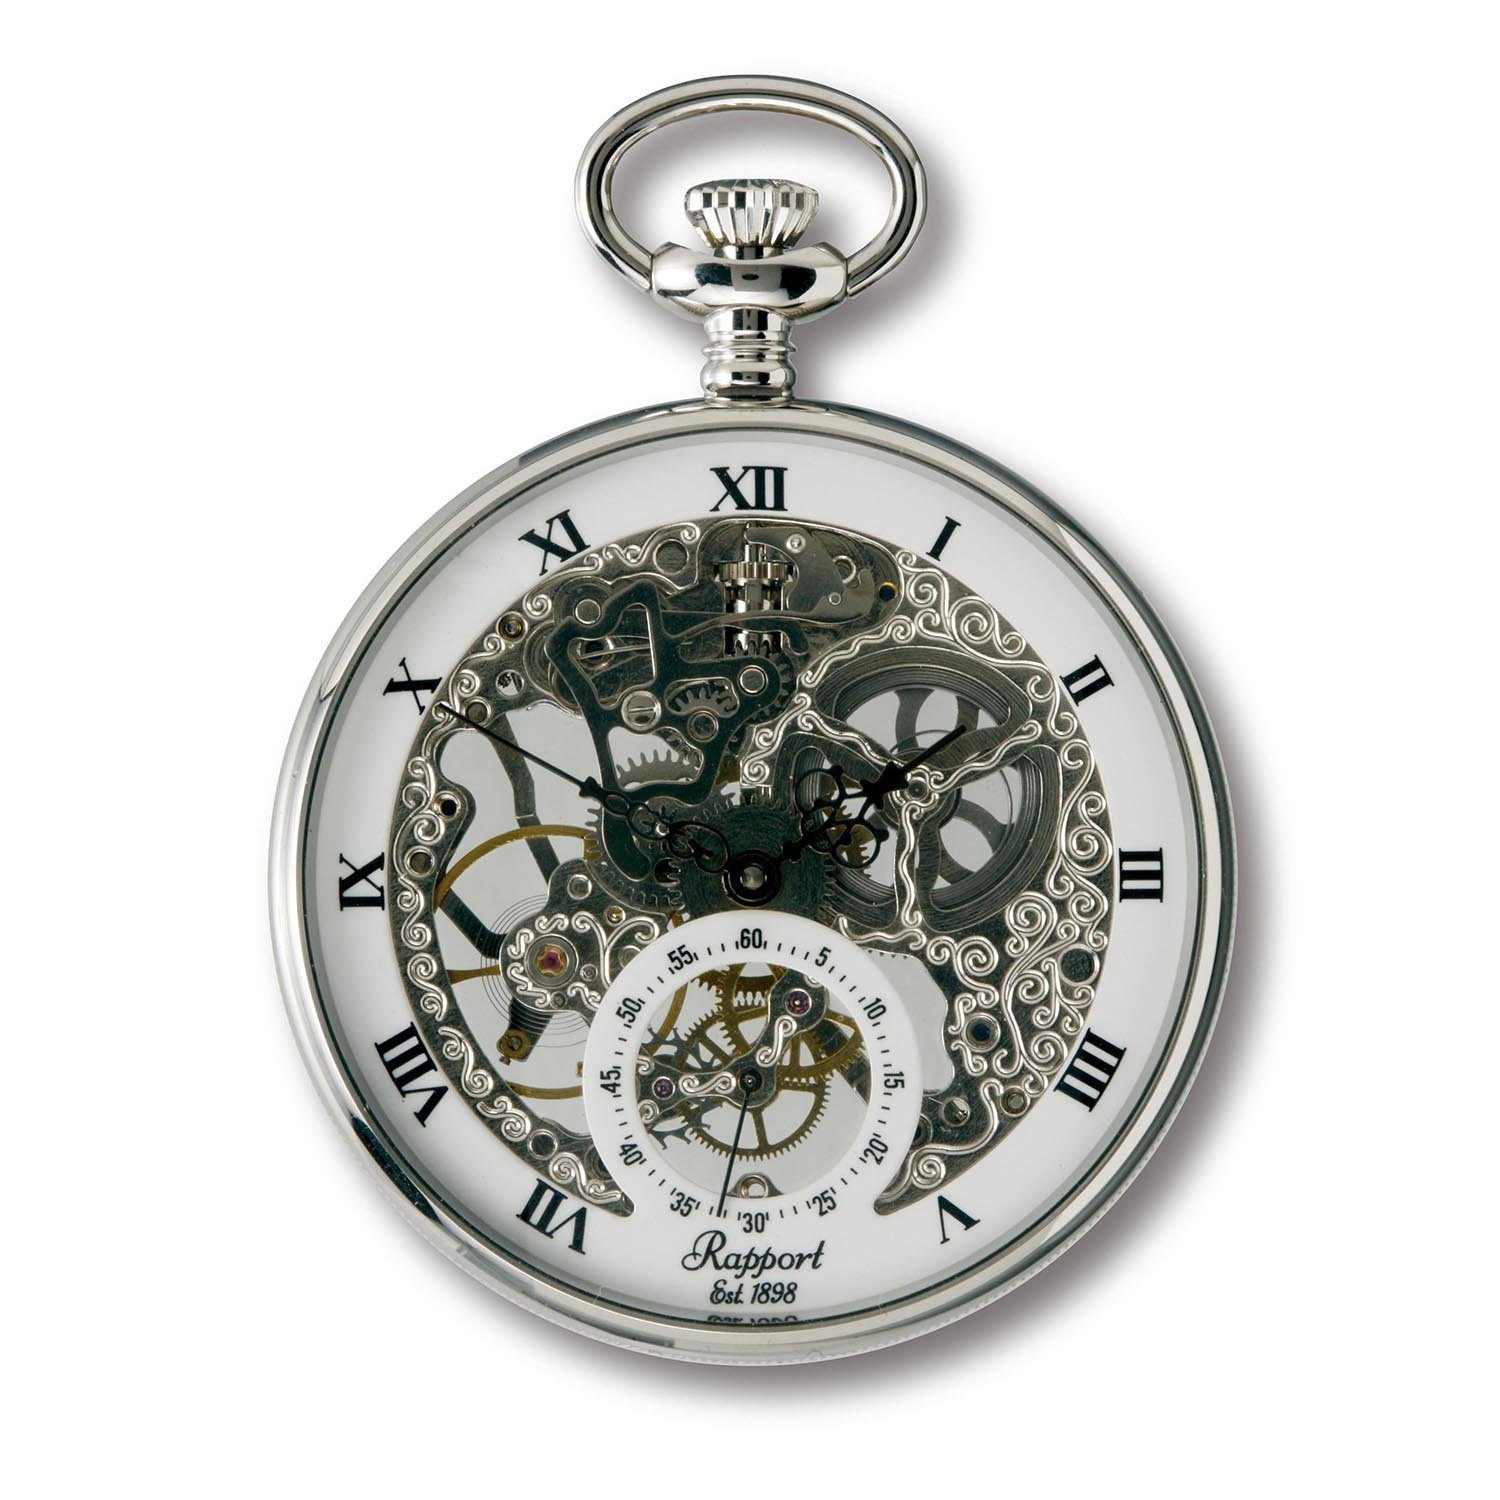 Vintage Pocket Watch with Chain by Rapport - Classic Oxford Skeletonized Open Face Pocket Watch with Sub-Seconds - Silver by Rapport